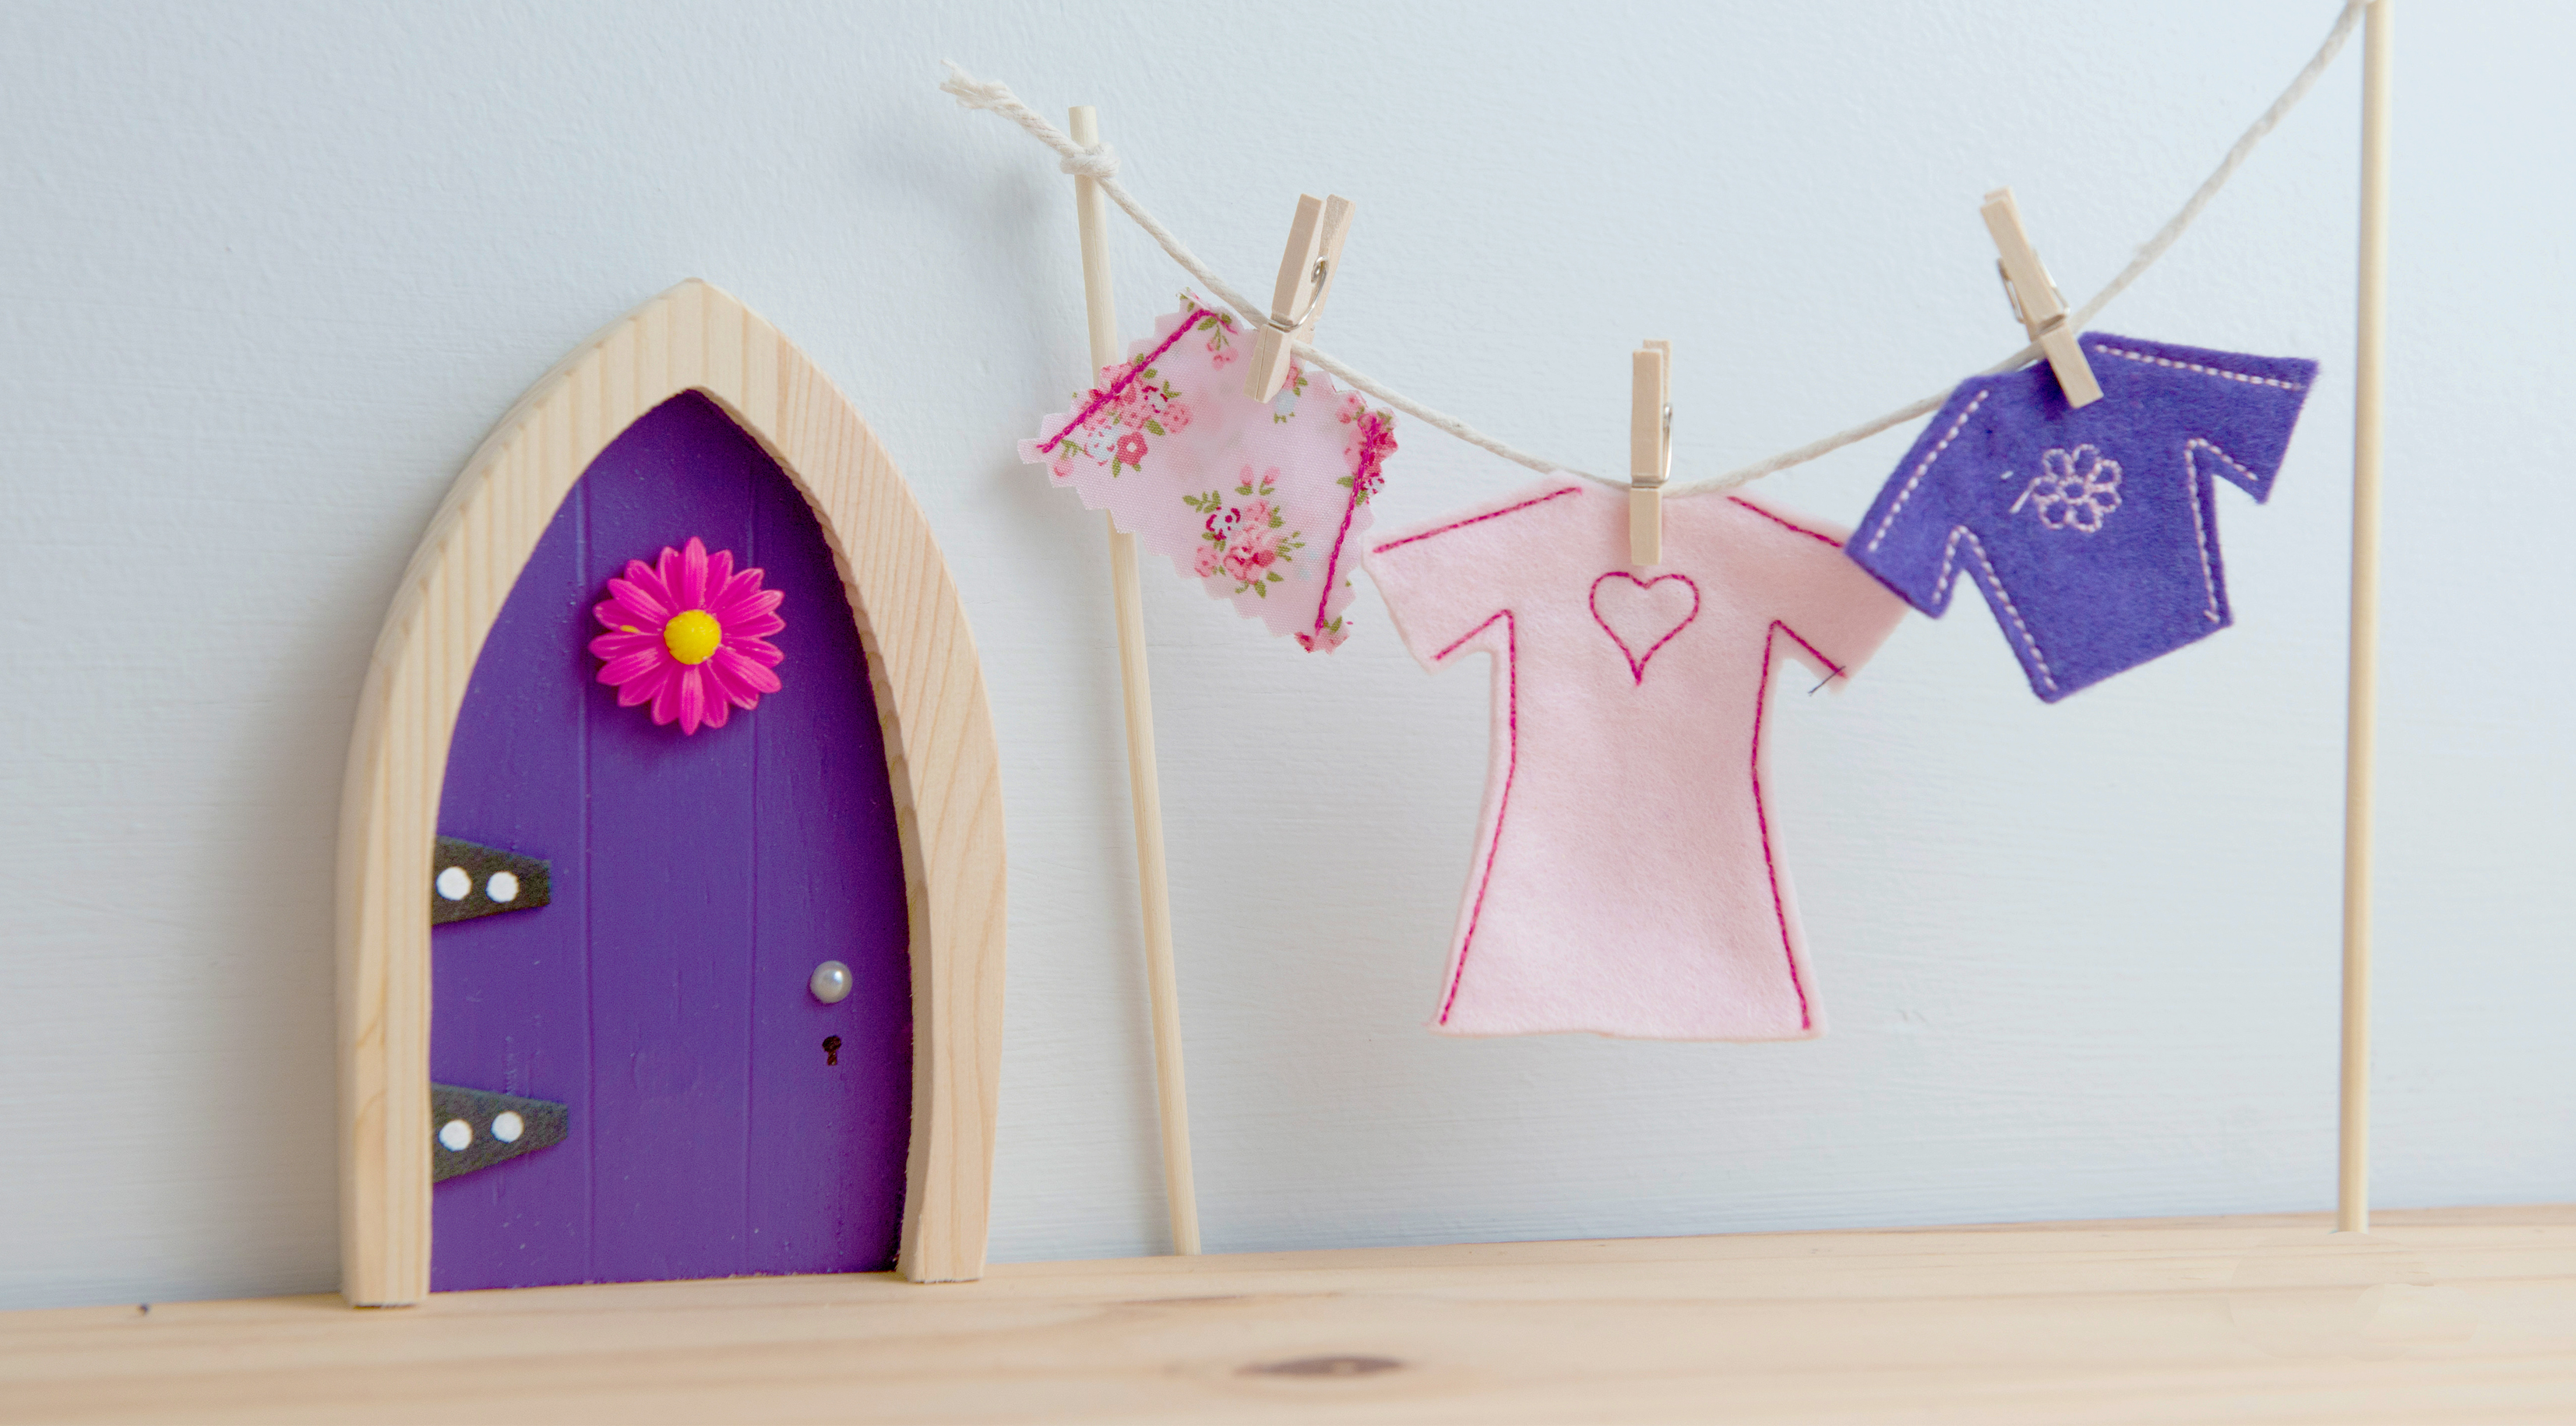 The Irish Fairy Door Company & A gift fit for a princess - The Irish Fairy Door Company